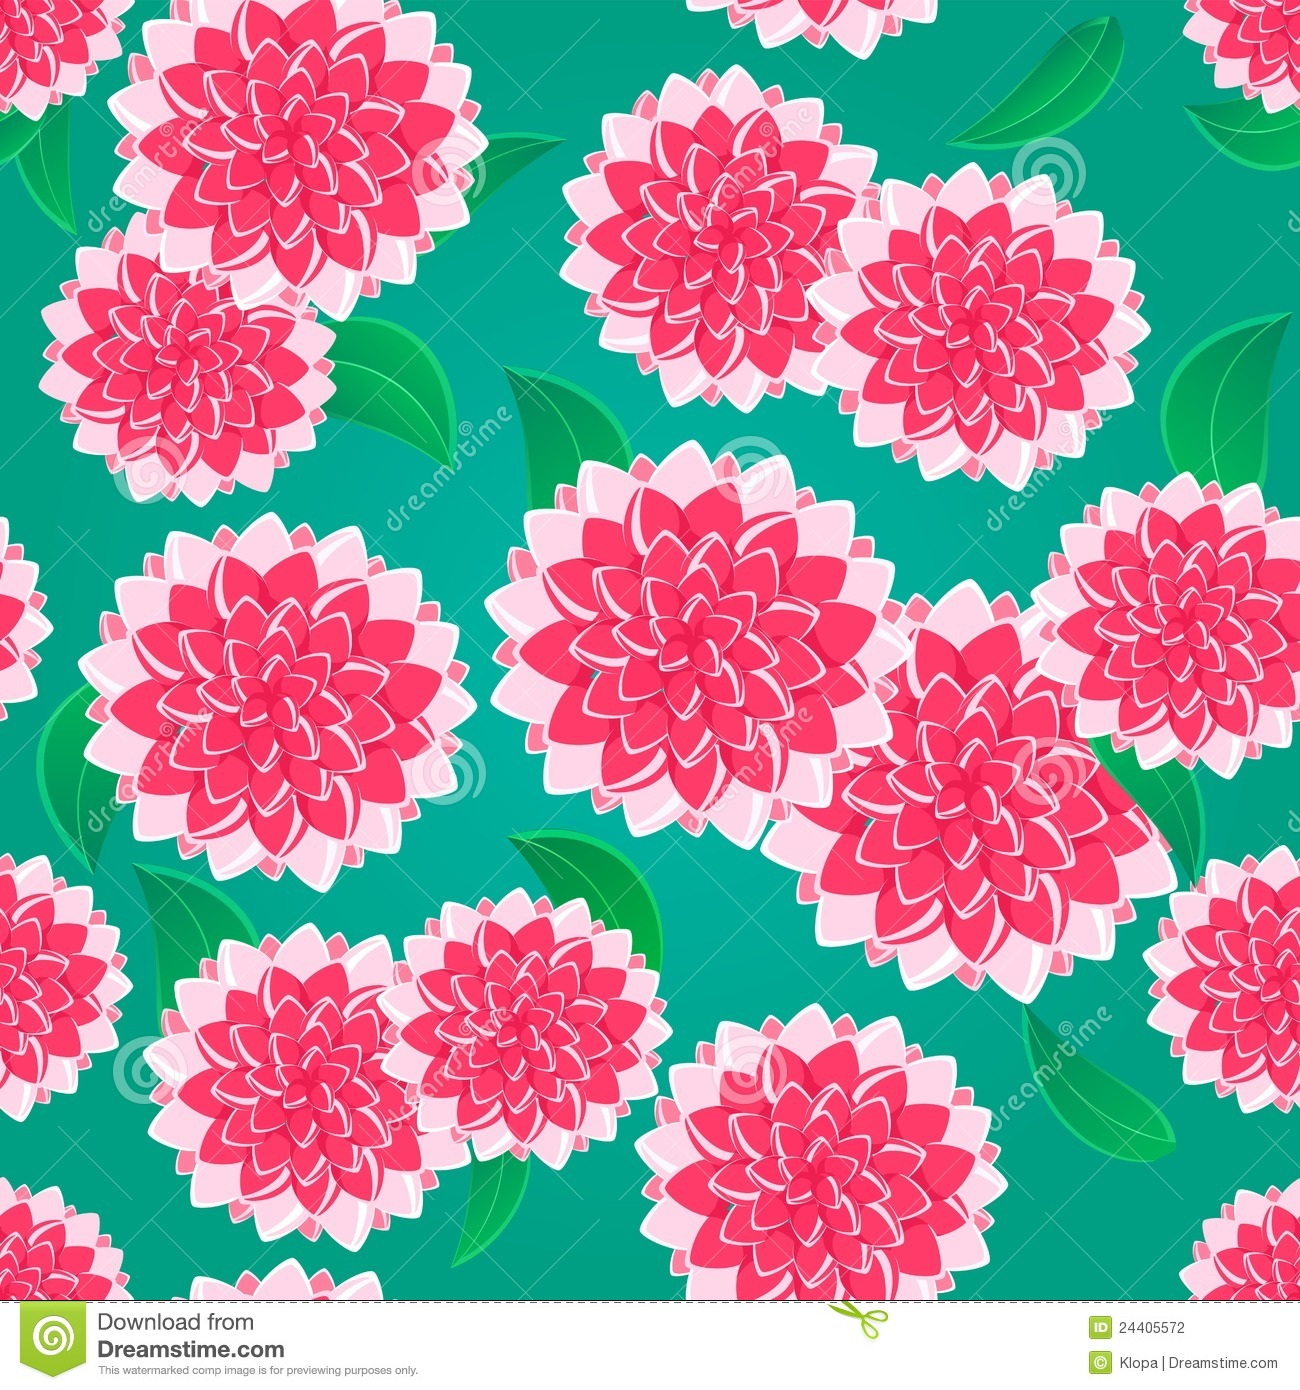 Bright Pink Flower Seamless Pattern Stock Vector ...